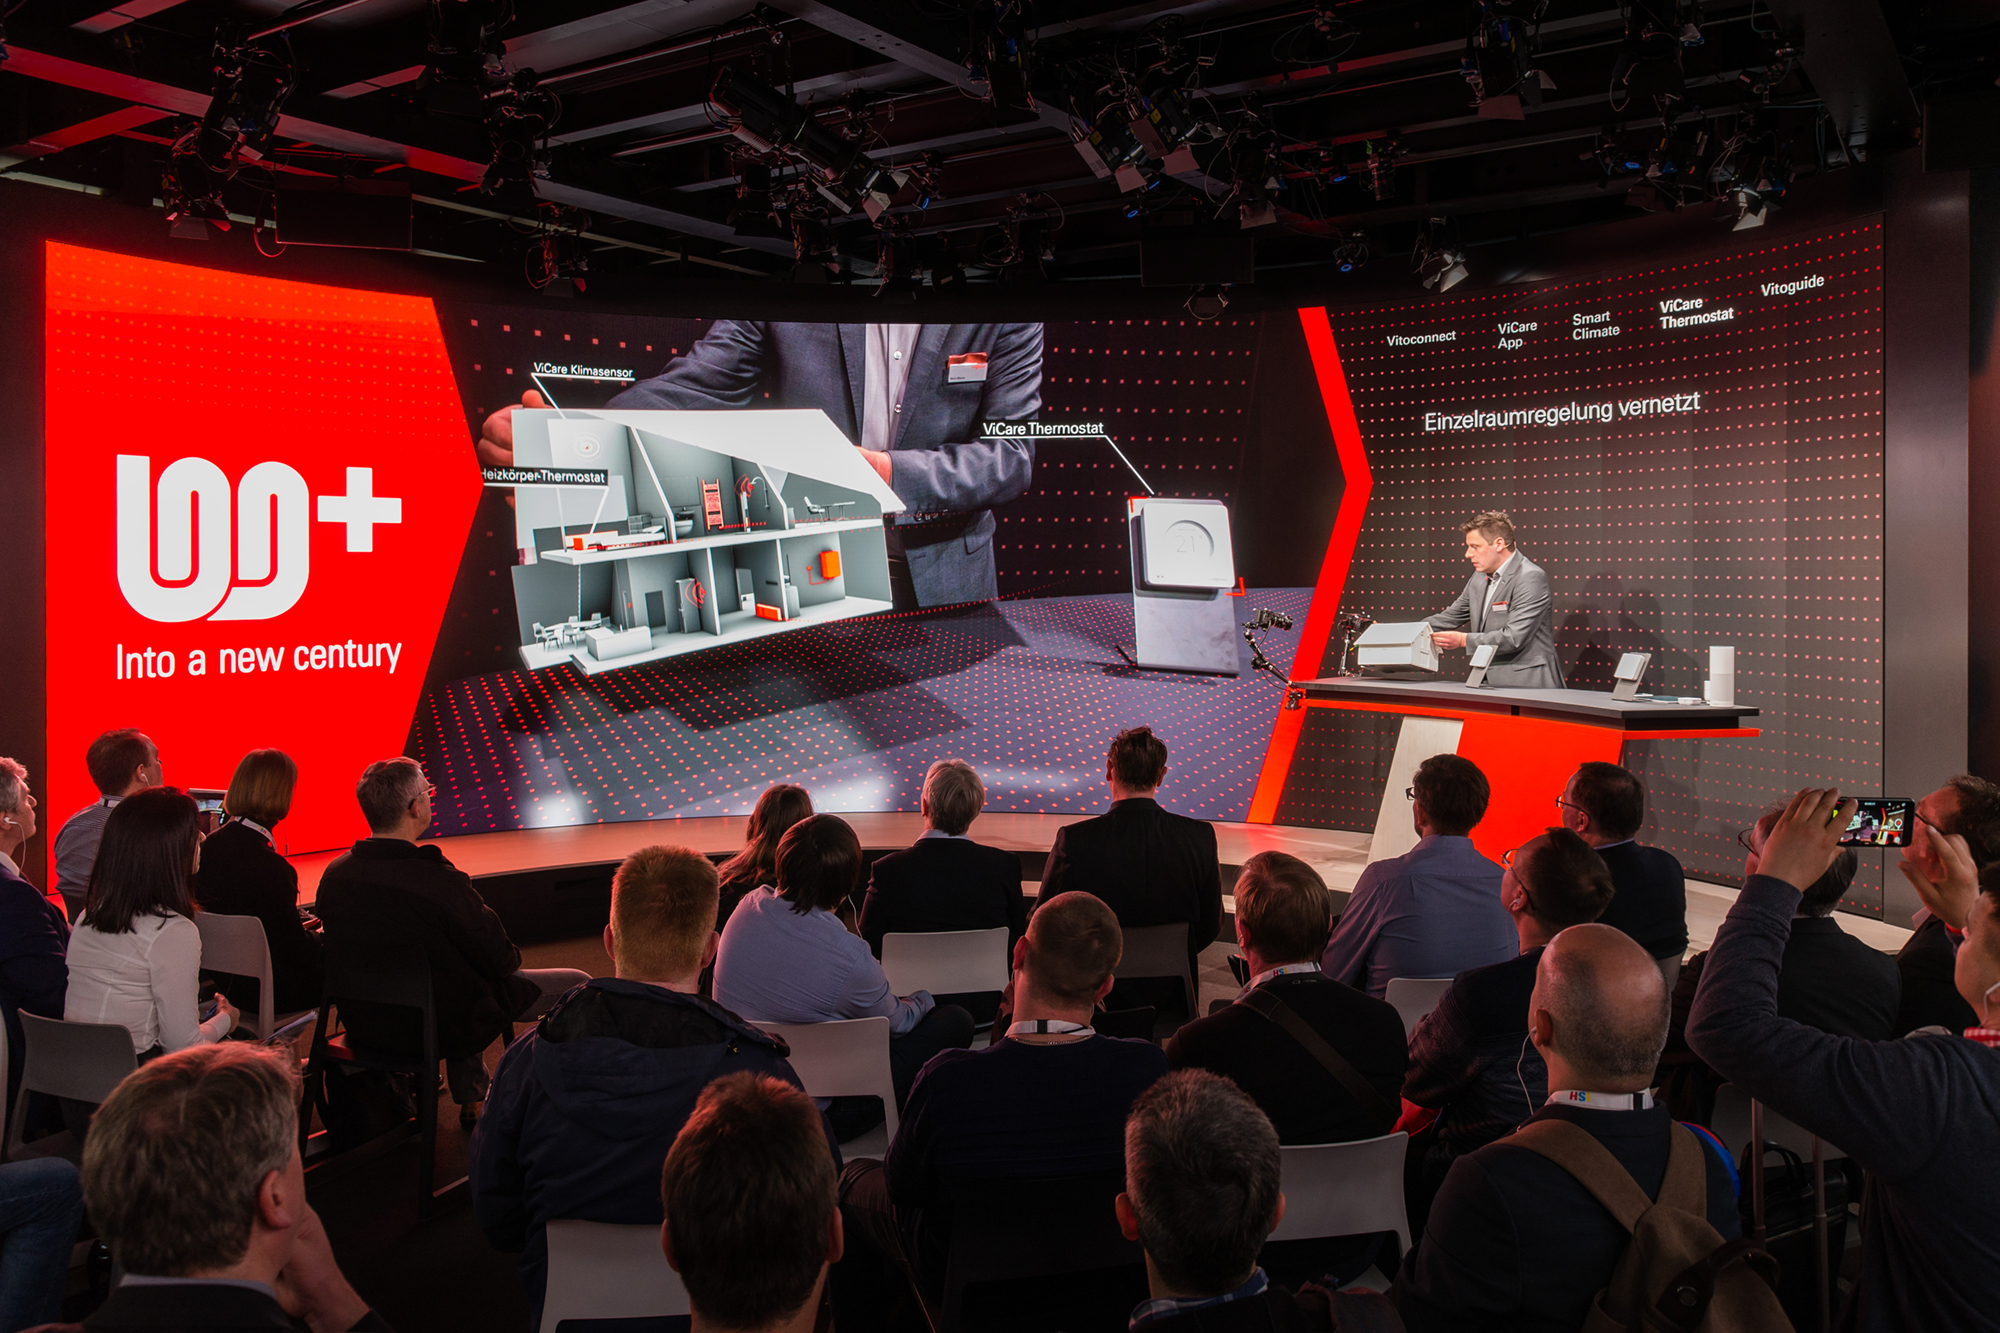 Customer Journey for Viessmann at the ISH 2017